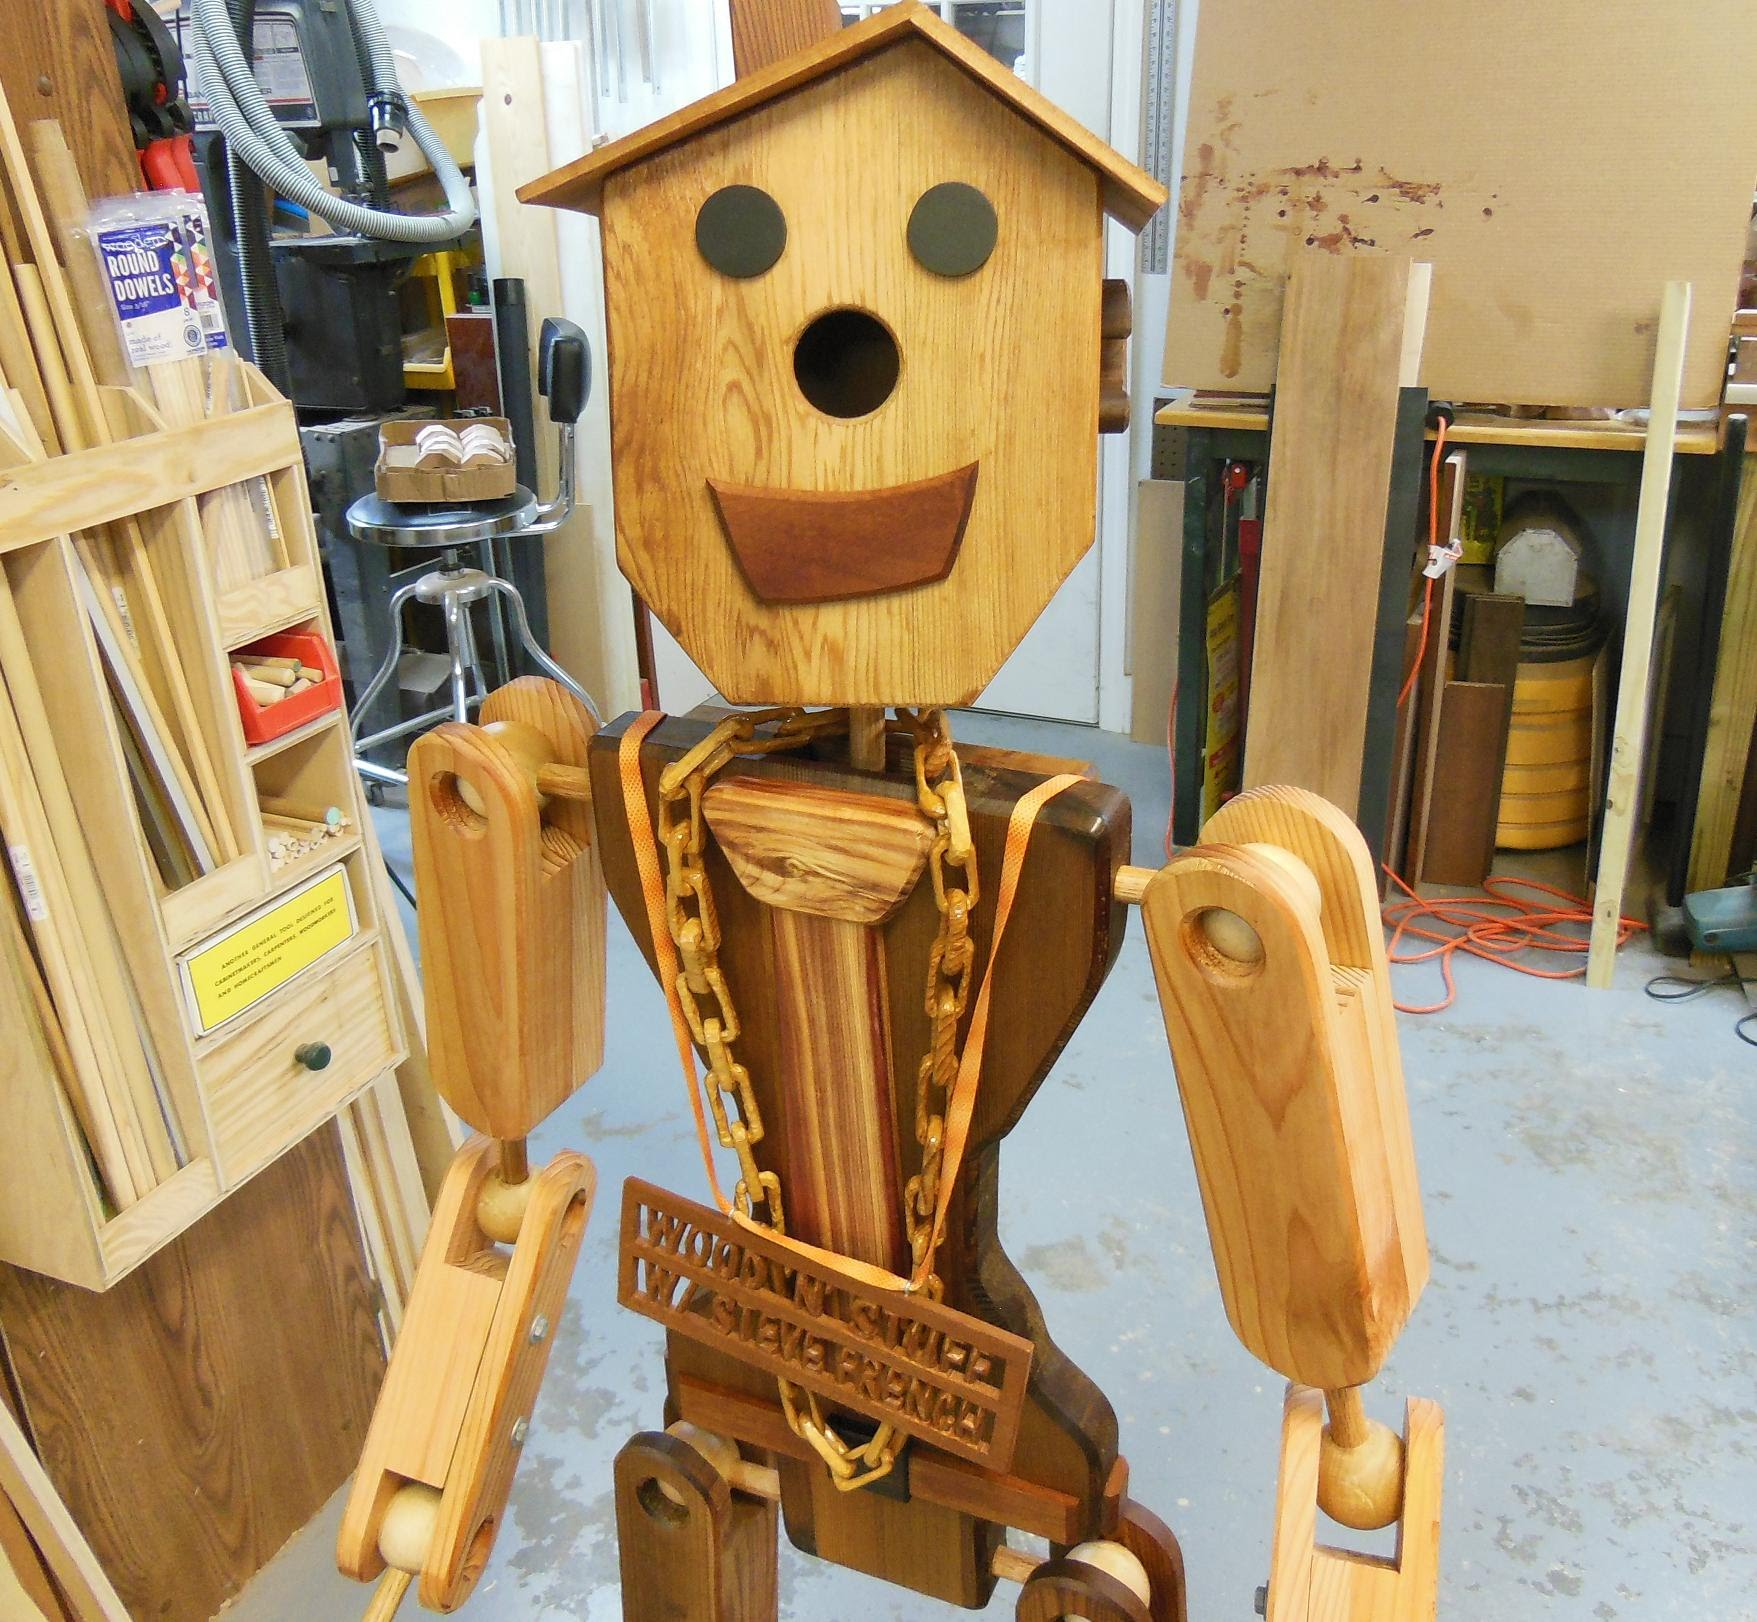 Awesome life-sized wooden robot: How I made